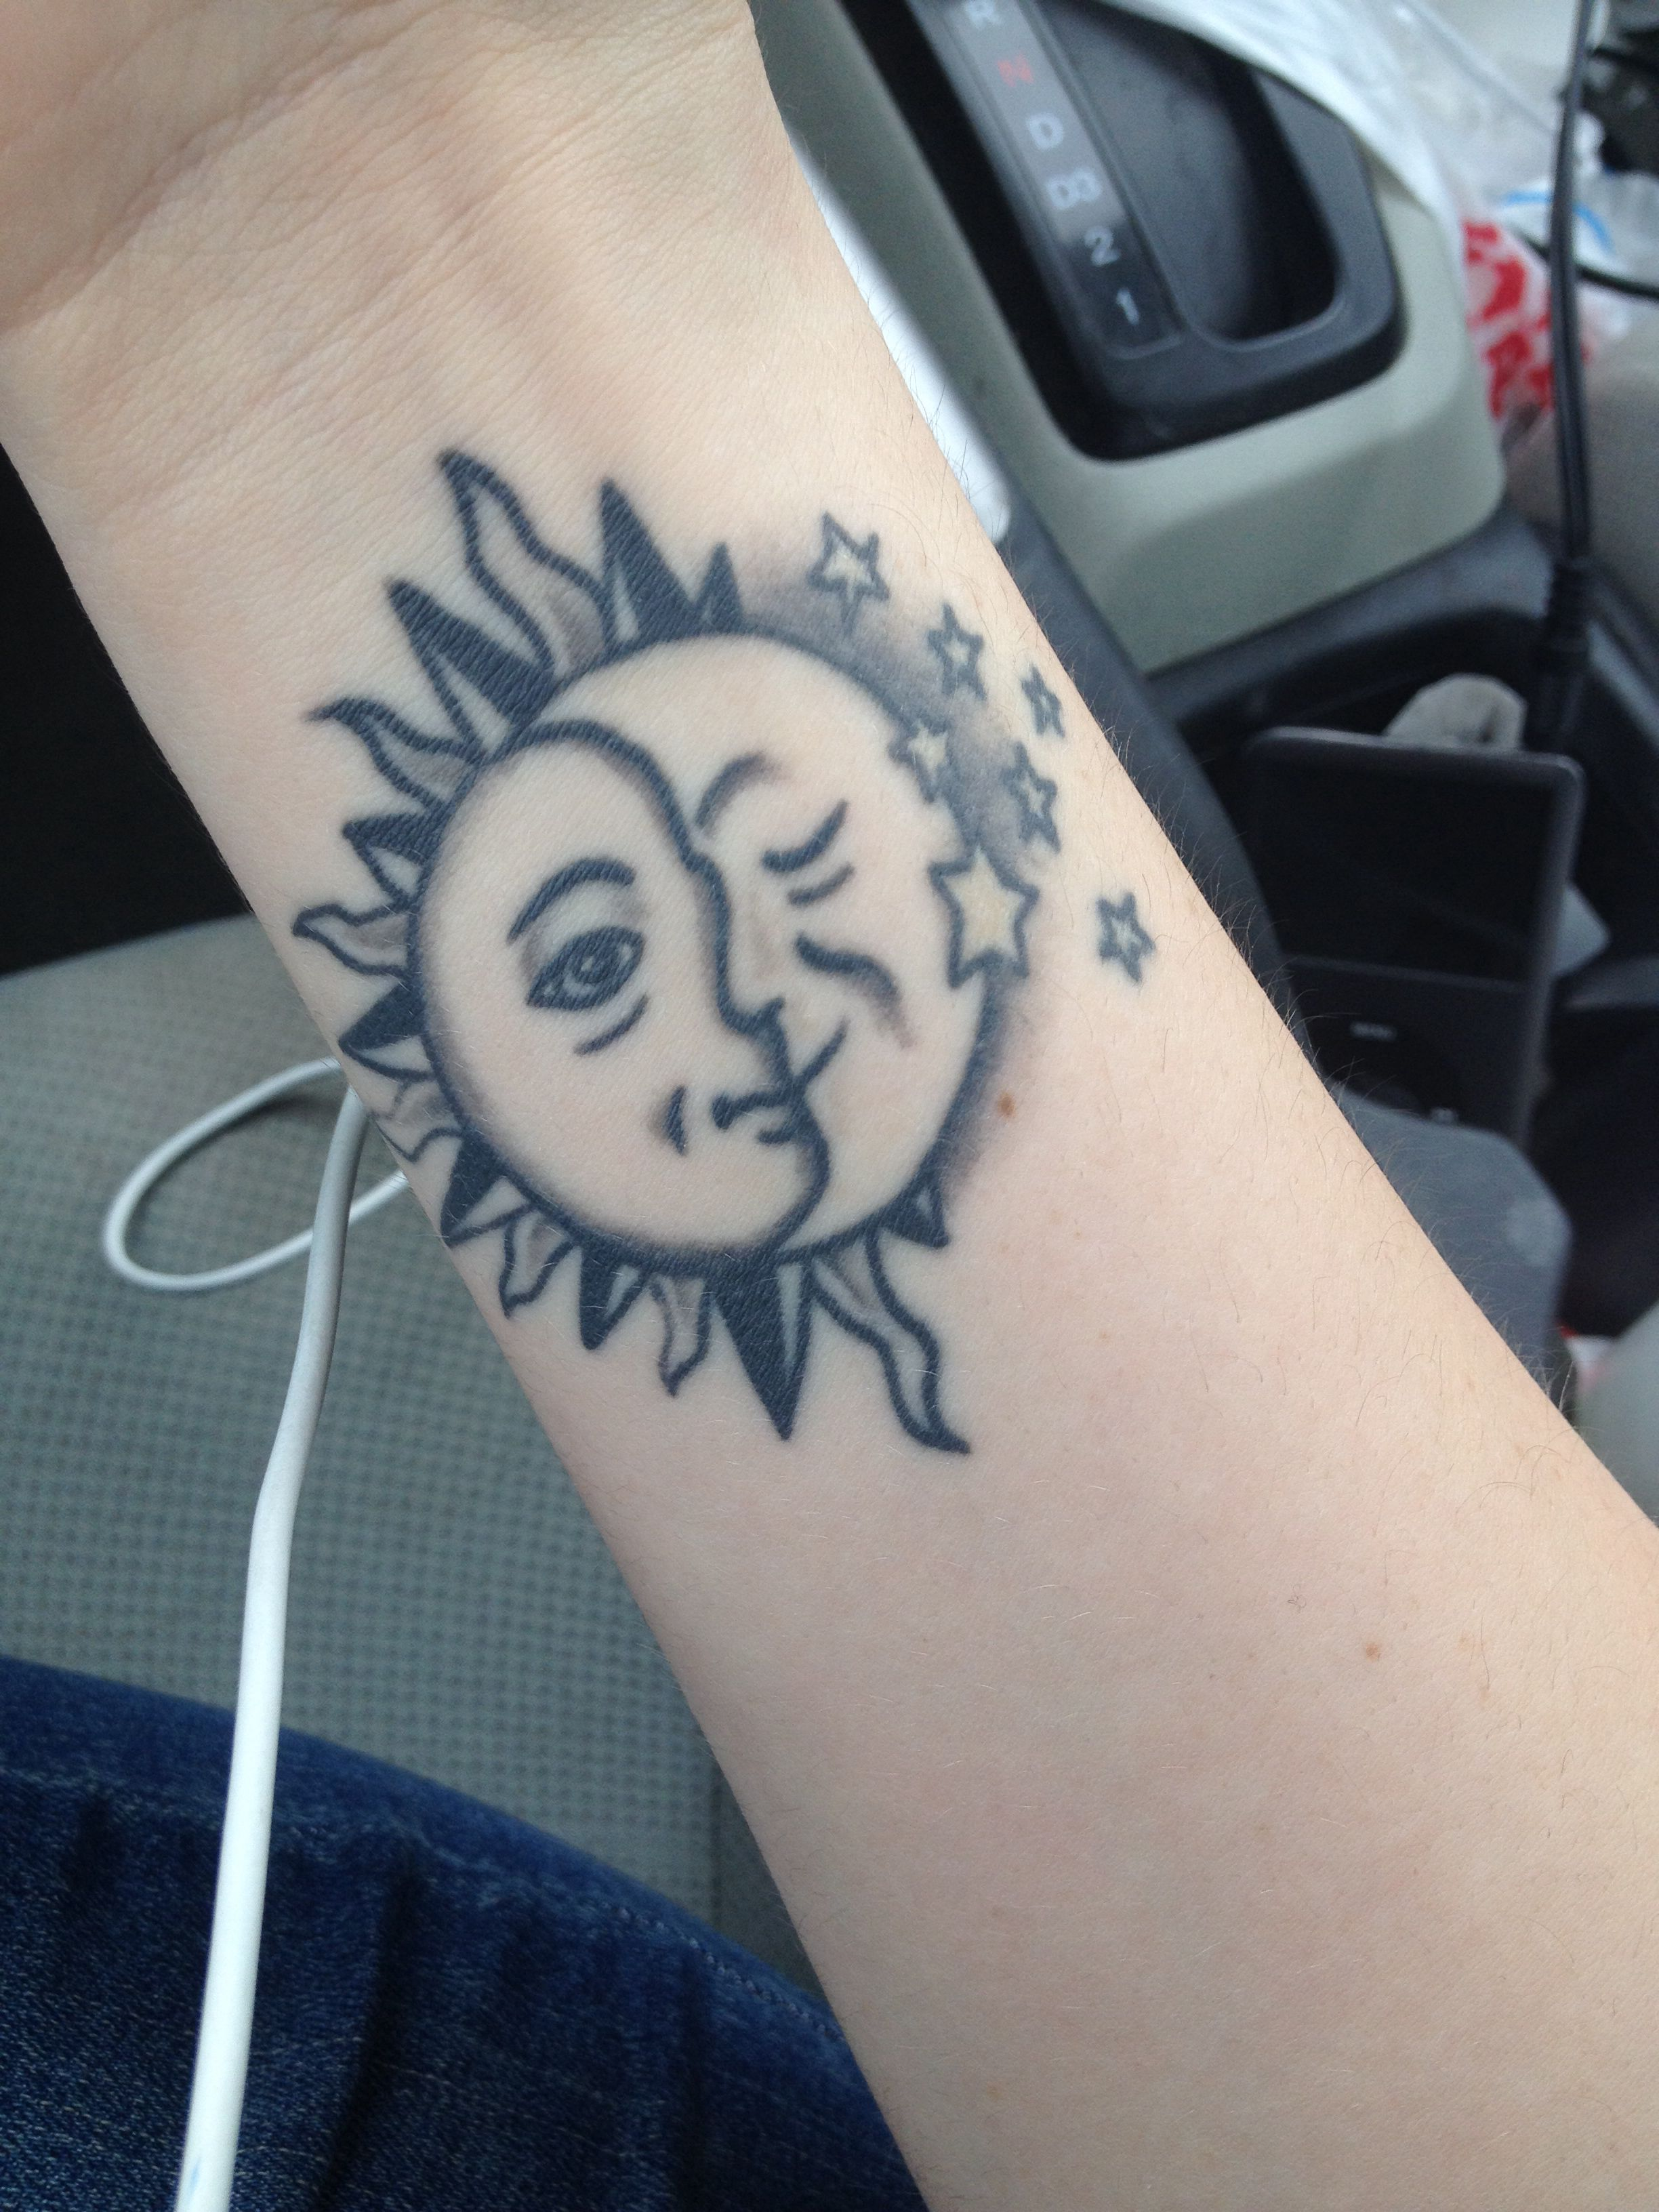 Sun & Moon Tattoo. I'd change a couple things and add some